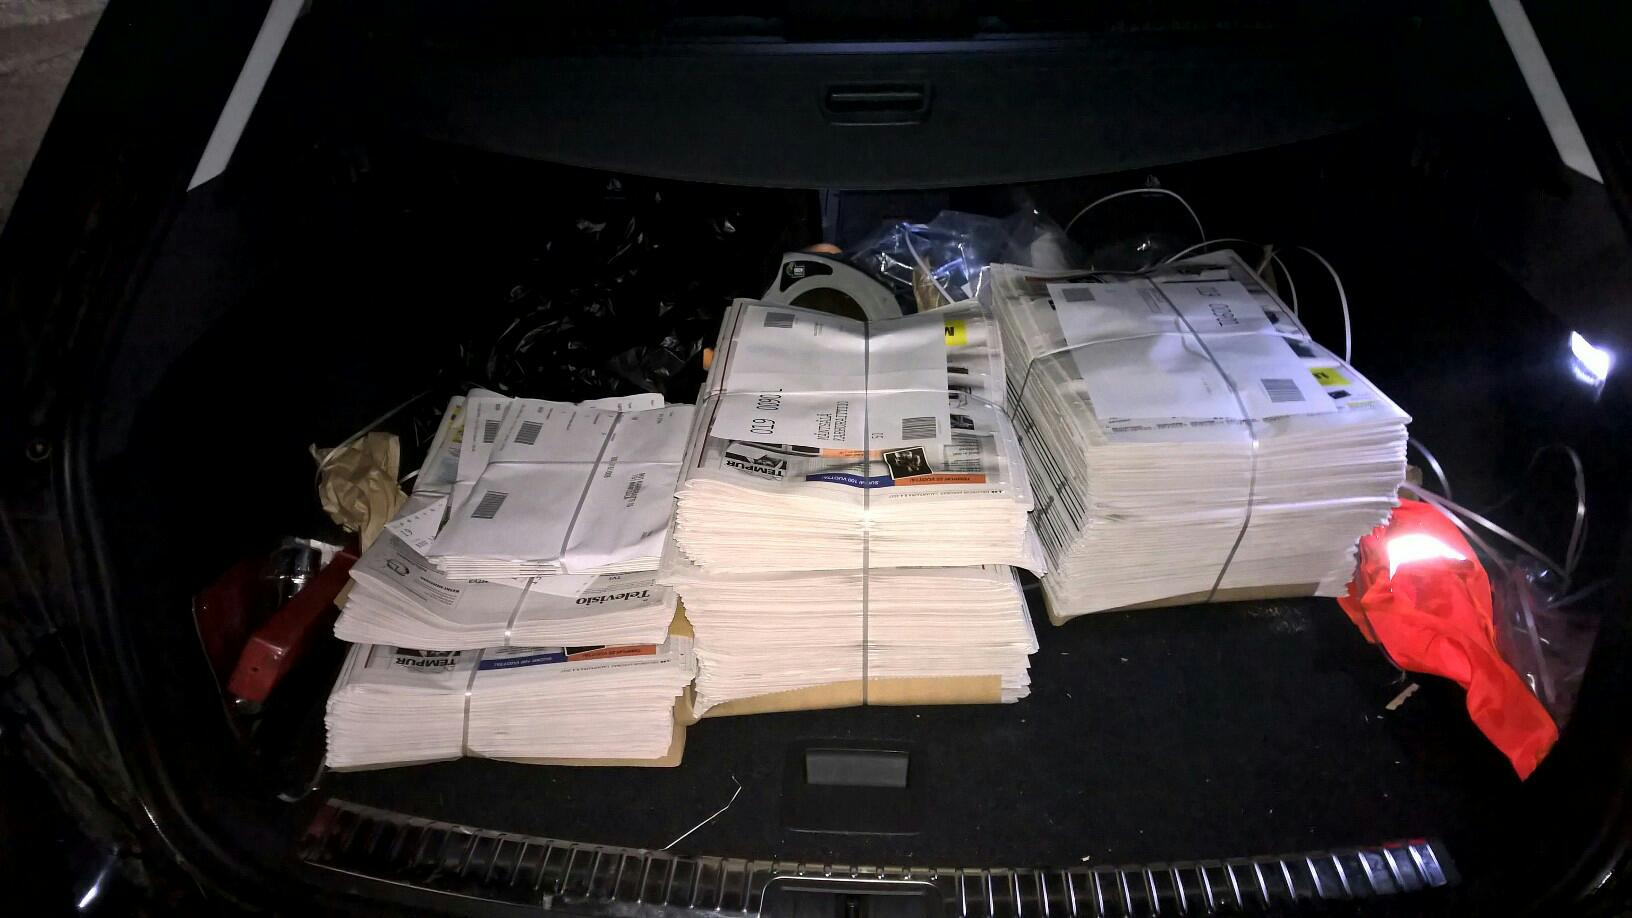 - This time, the load is small. Two circuits to do, the Sunday's Helsingin Sanomat is thick but a small number of other papers are also delivered.